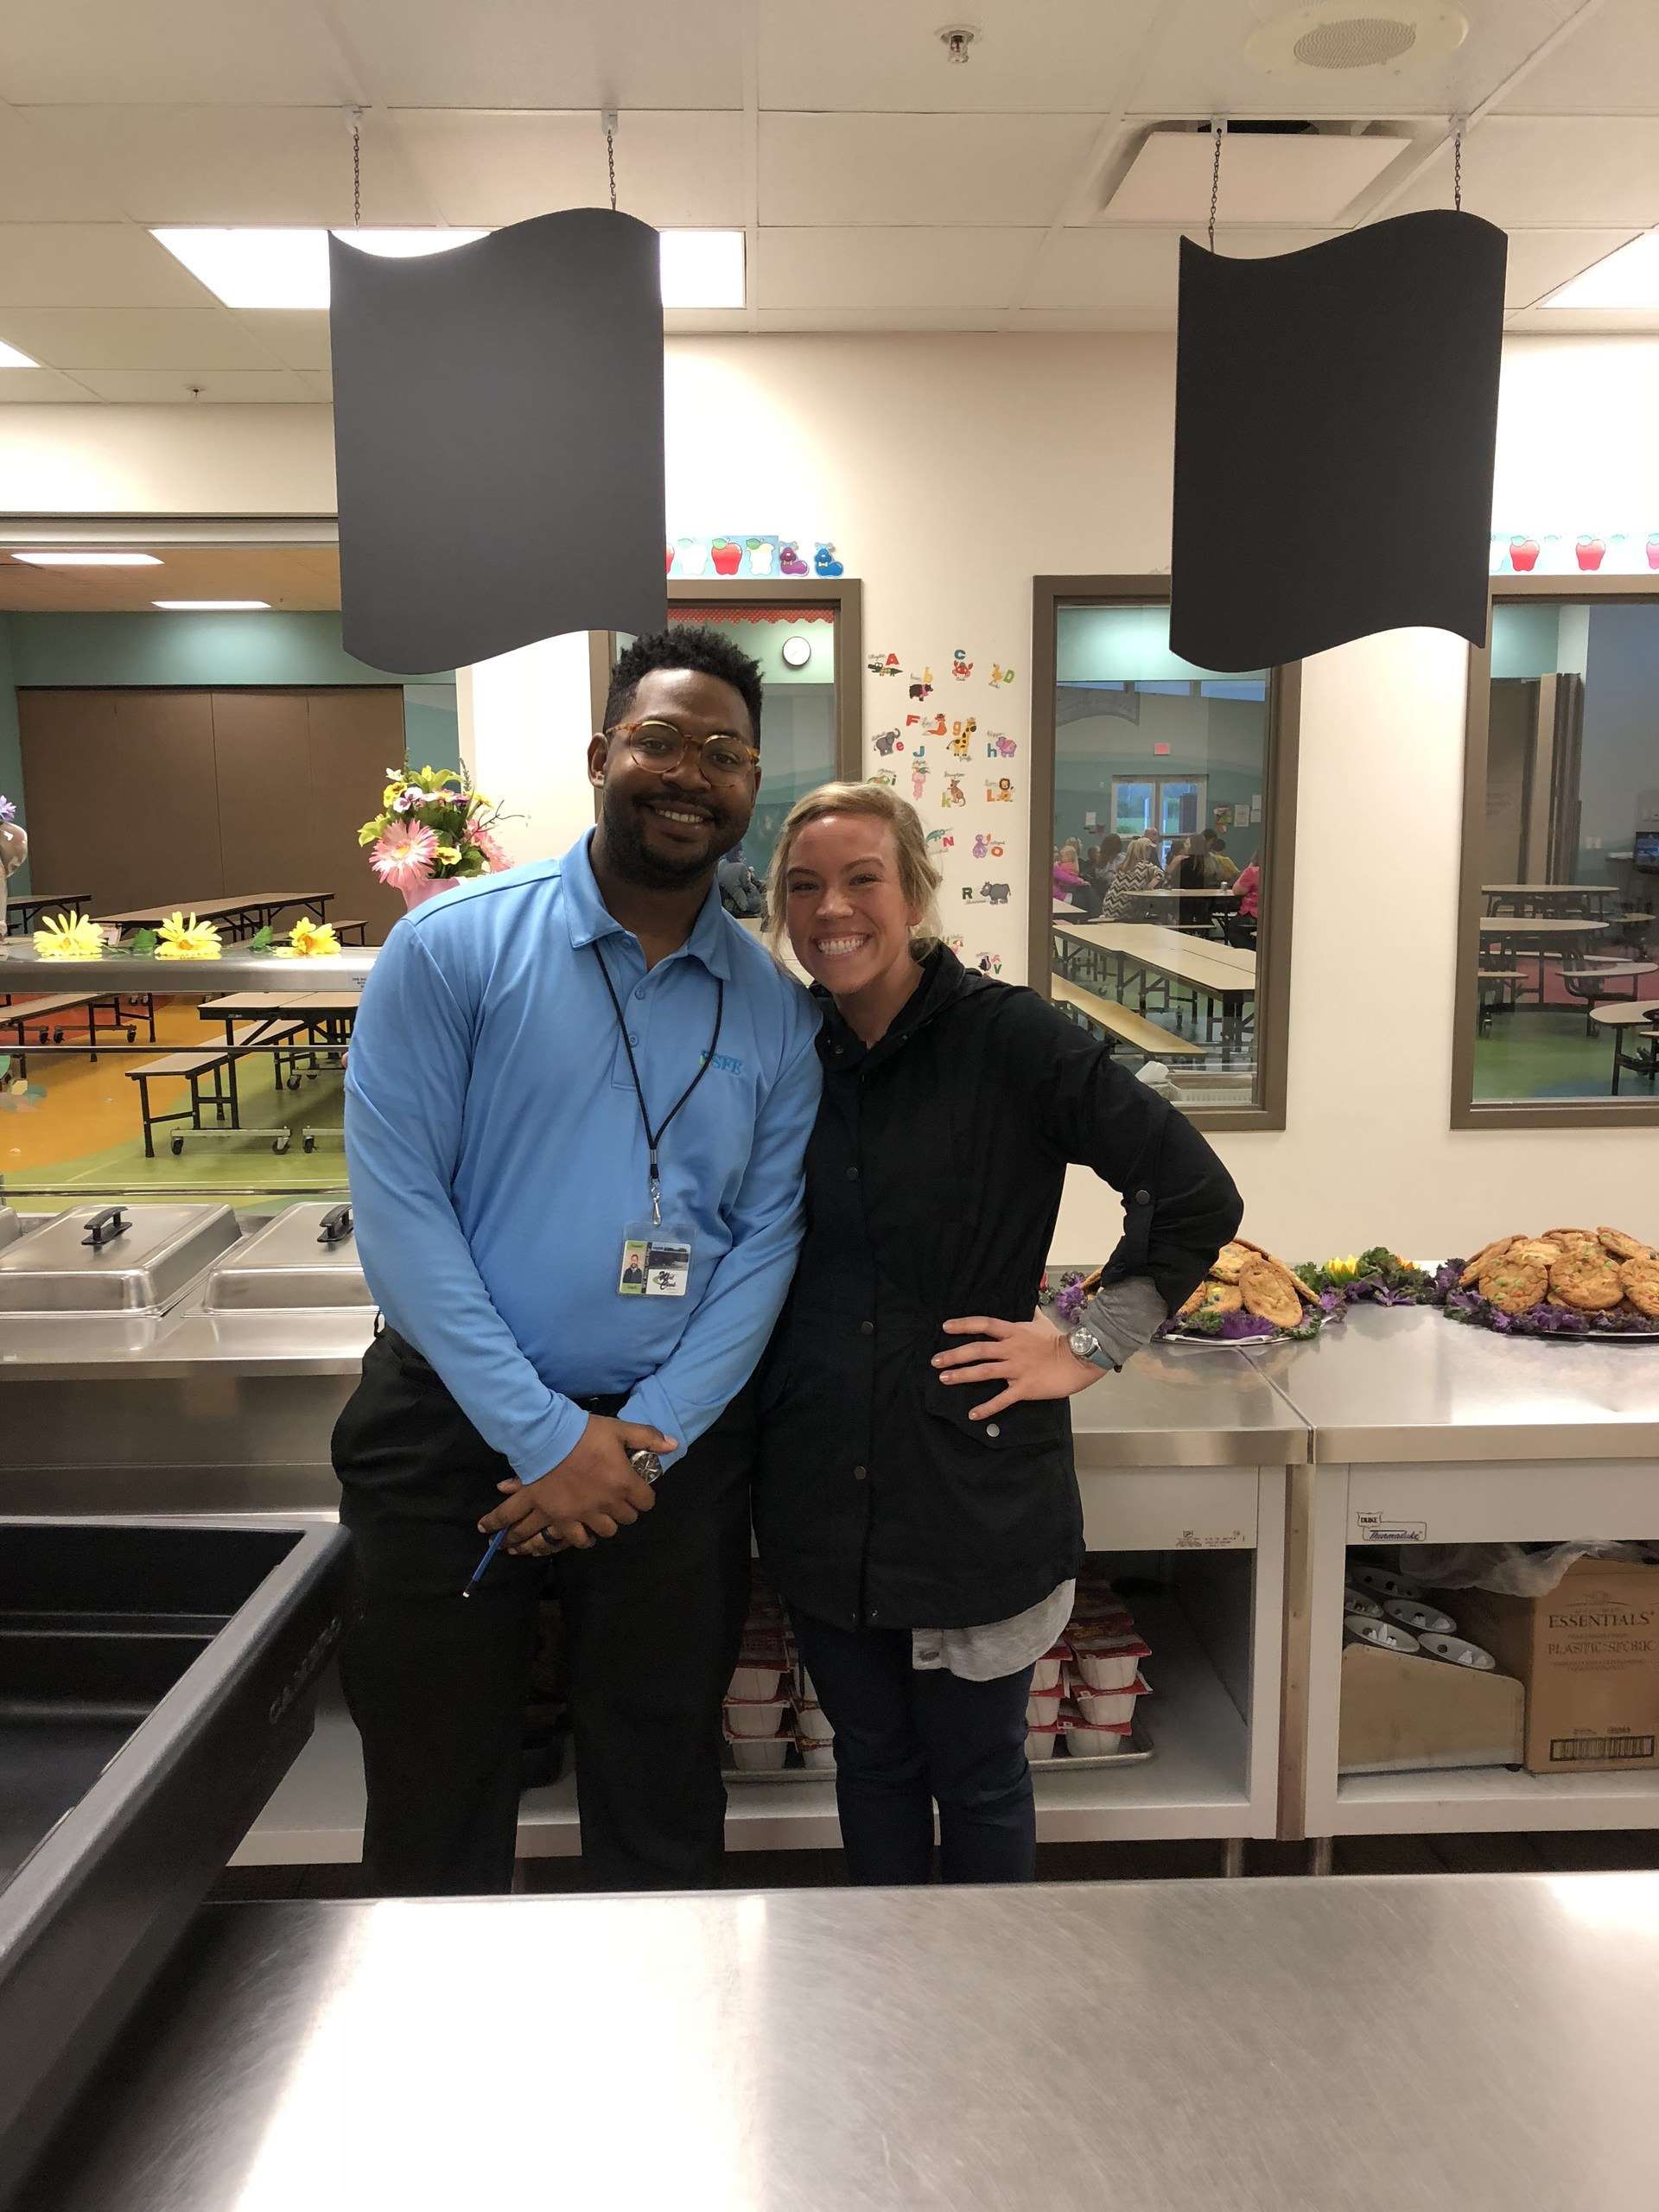 Cafeteria Pictures